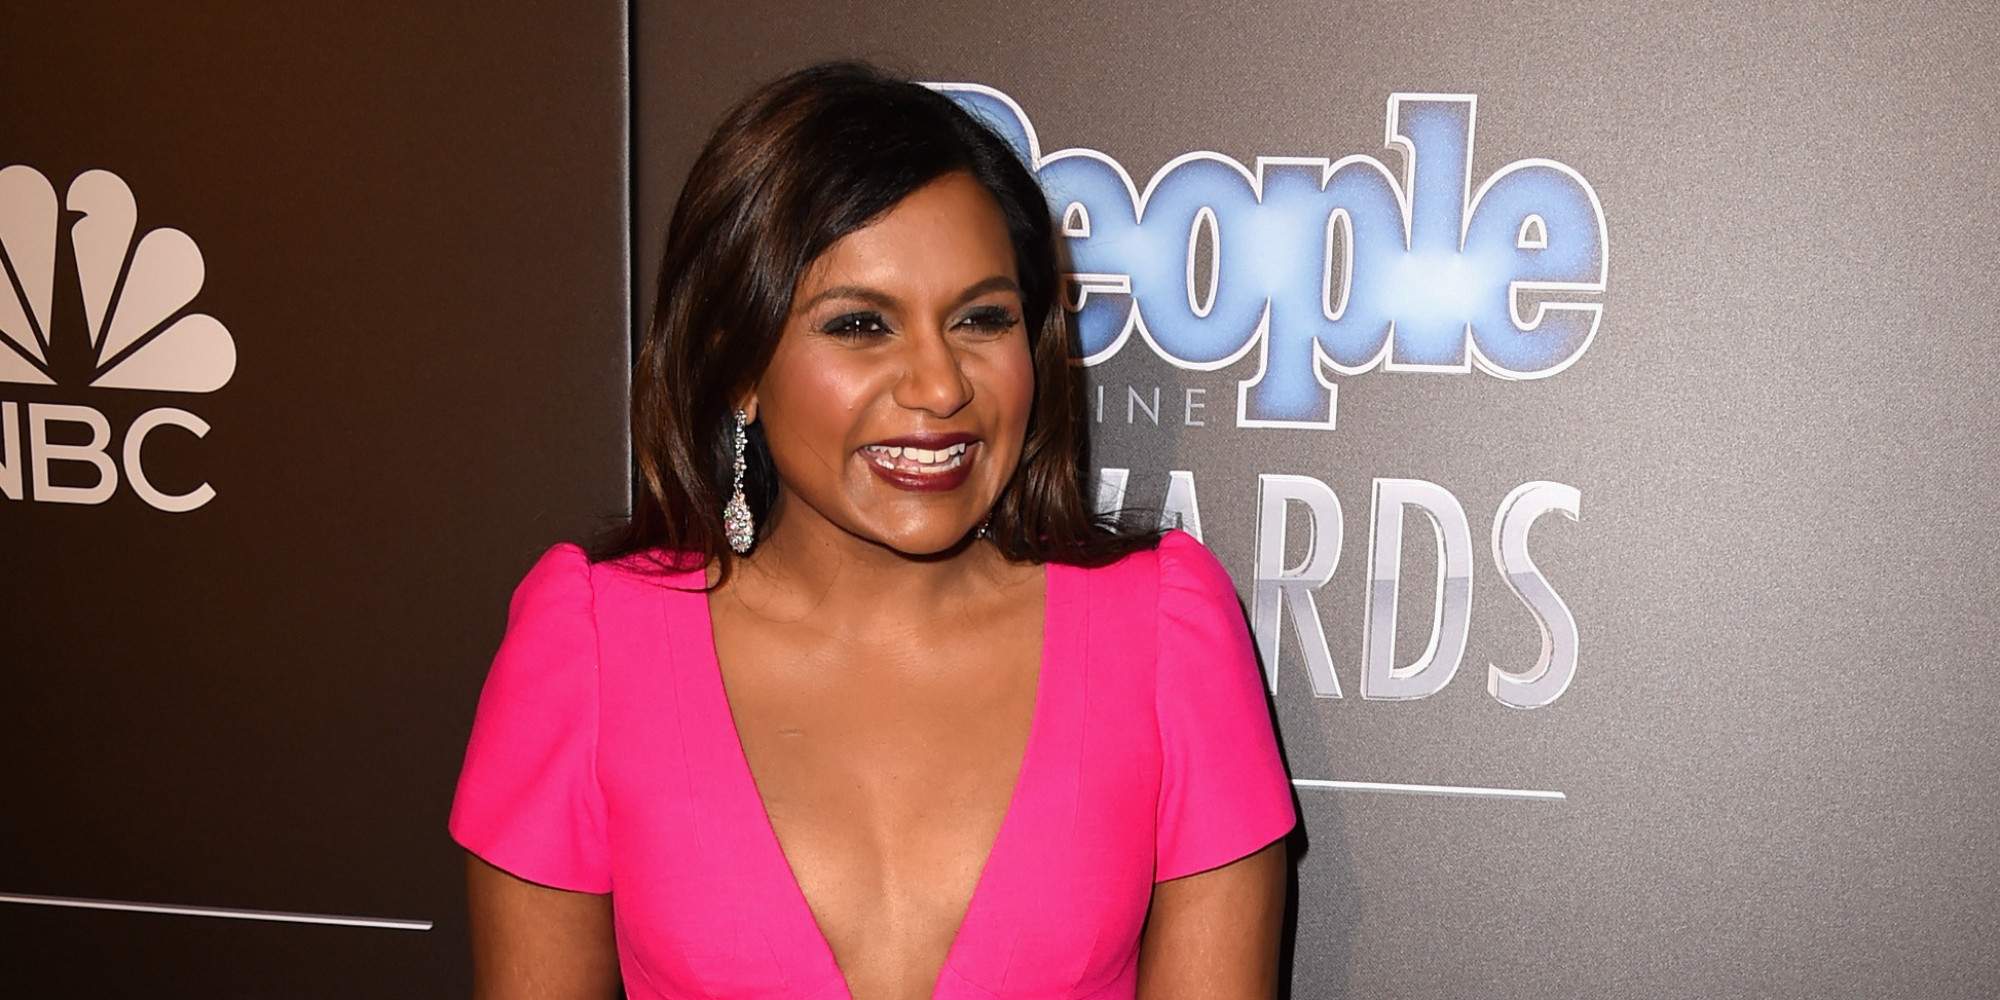 mindy kaling epubmindy kaling book, mindy kaling 2016, mindy kaling and bj novak, mindy kaling 2017, mindy kaling bj novak relationship, mindy kaling book read online, mindy kaling plastic, mindy kaling photos, mindy kaling why not me epub, mindy kaling wiki, mindy kaling greta gerwig, mindy kaling buzzfeed, mindy kaling arm, mindy kaling invisible, mindy kaling vogue, mindy kaling wdw, mindy kaling conan, mindy kaling inside out, mindy kaling epub, mindy kaling and bj novak tweets